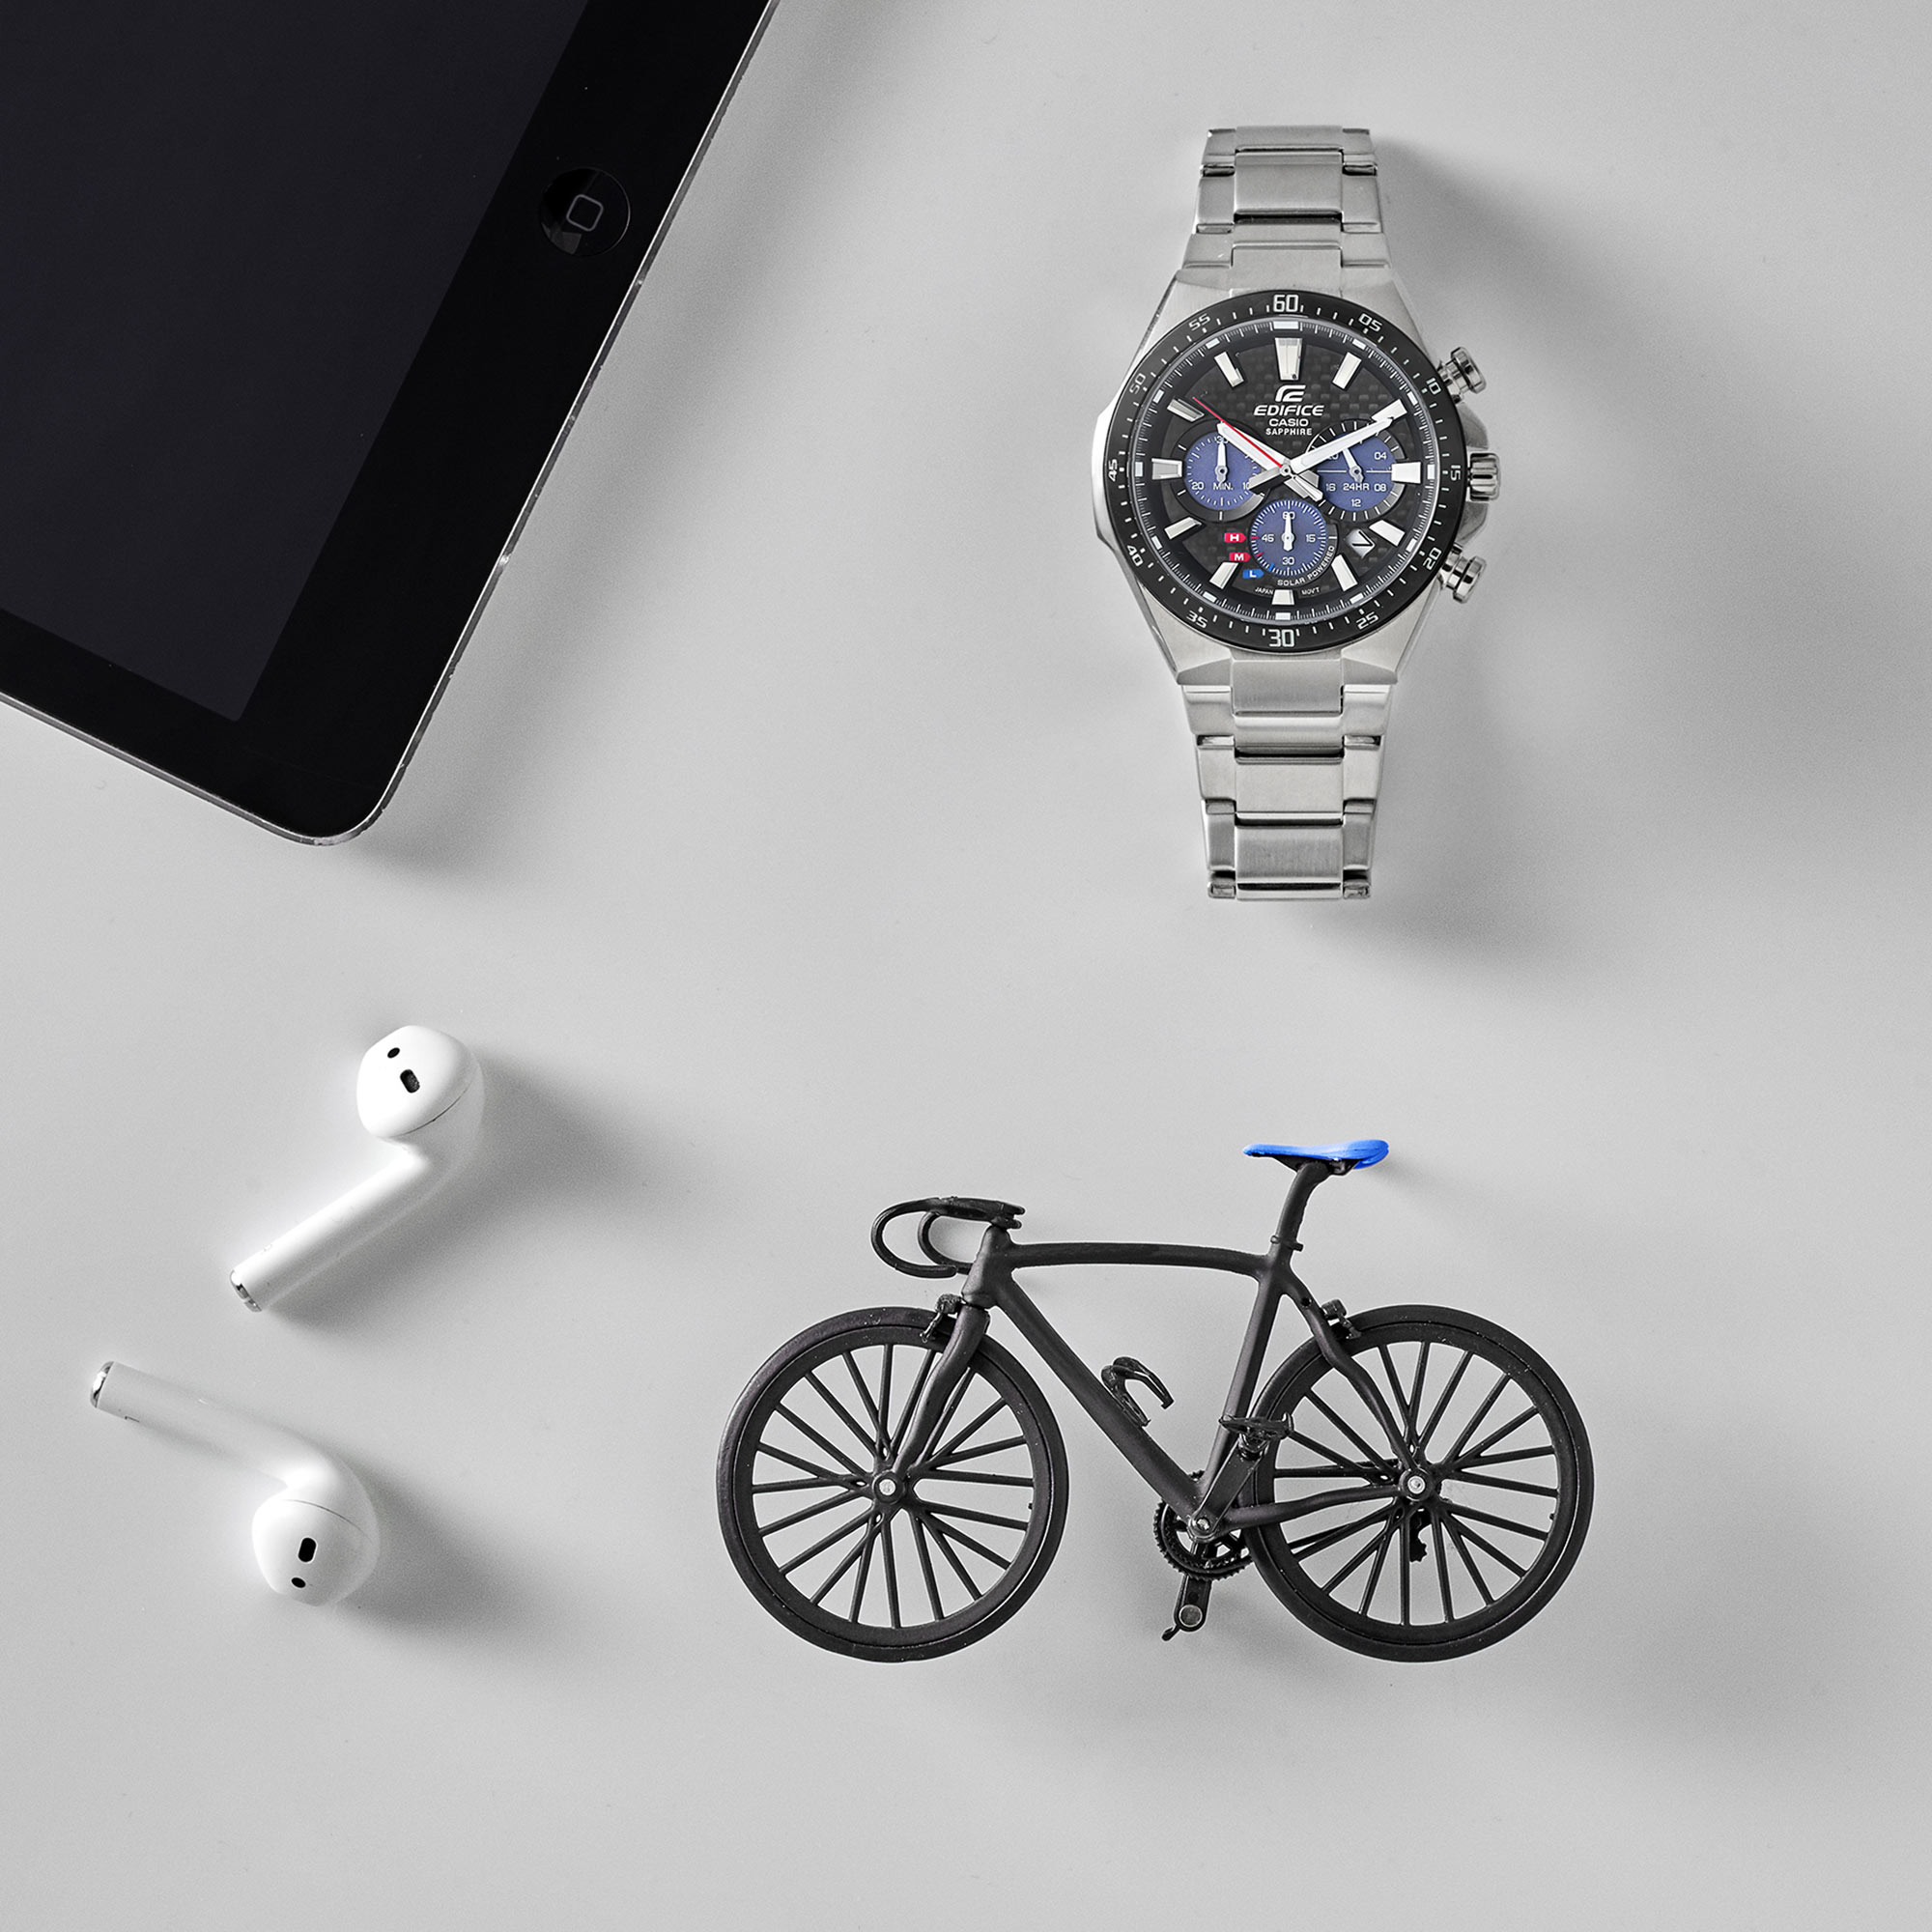 Man Ipad Bike Headphones Airpods Bicycle Still Life Shot for Casio by Fotografando